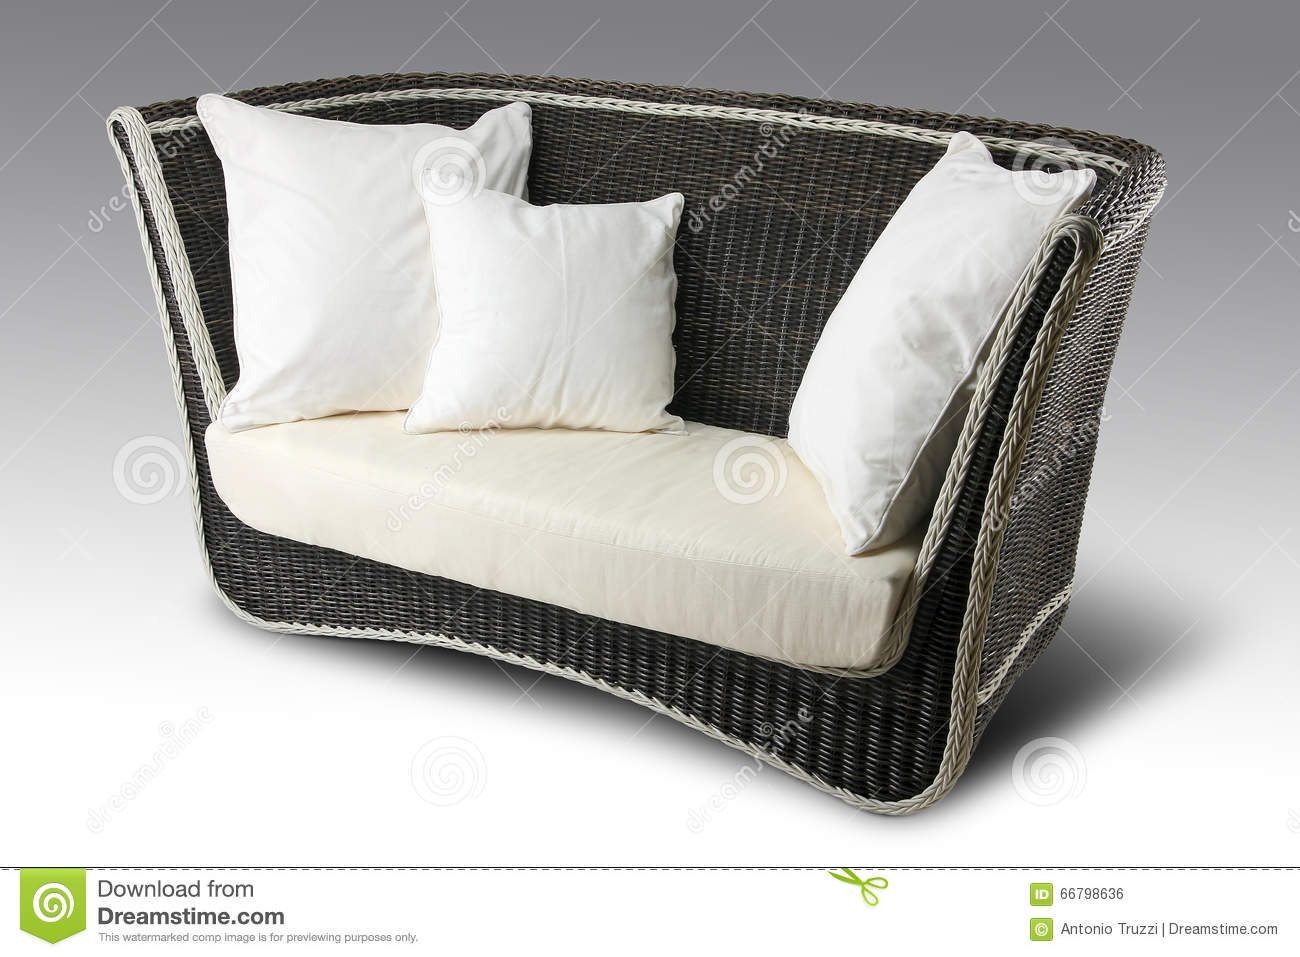 Wicker sofa with pillows